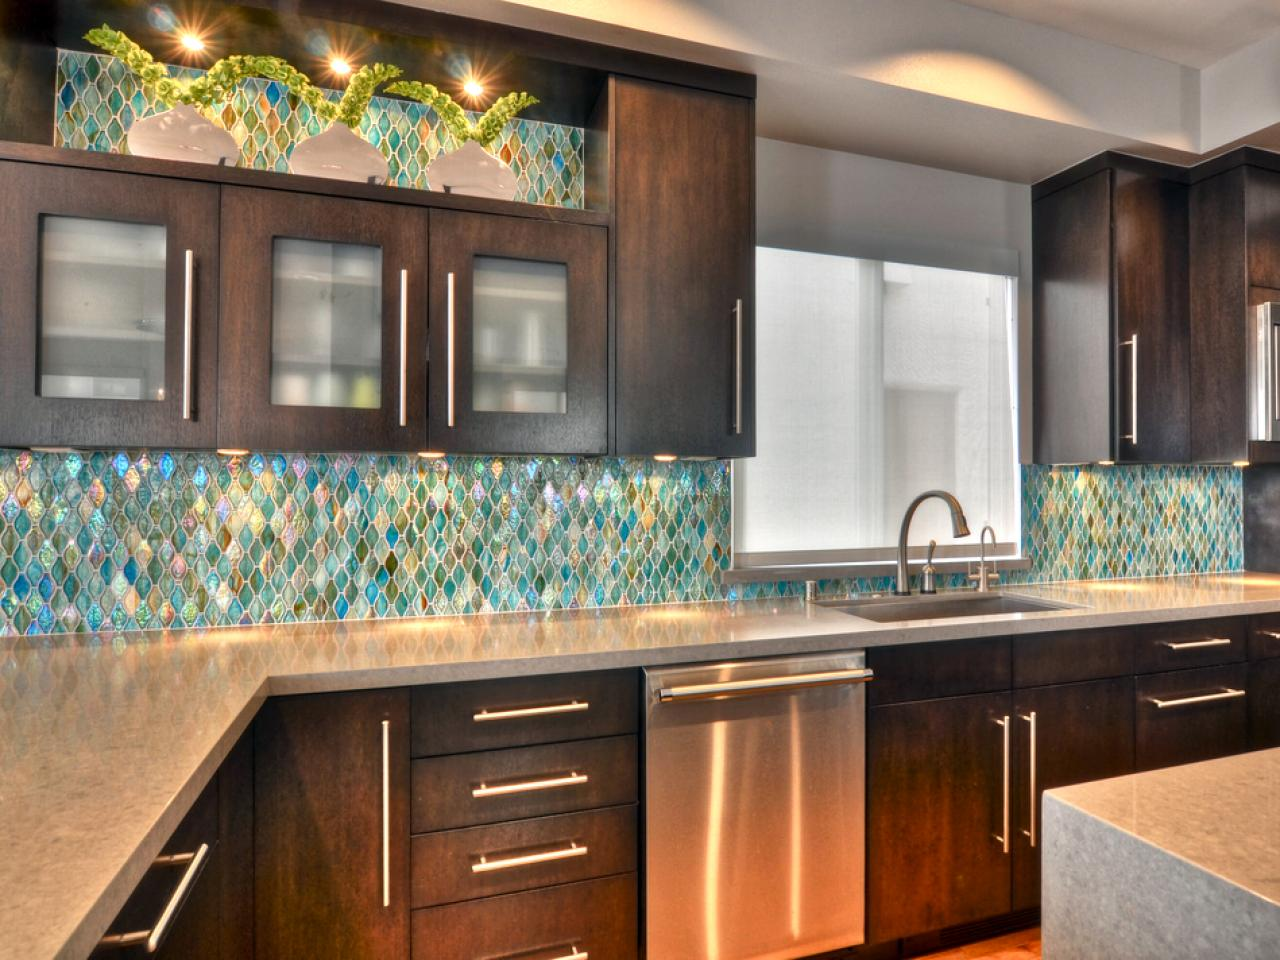 Glass Tile Kitchen Backsplash.